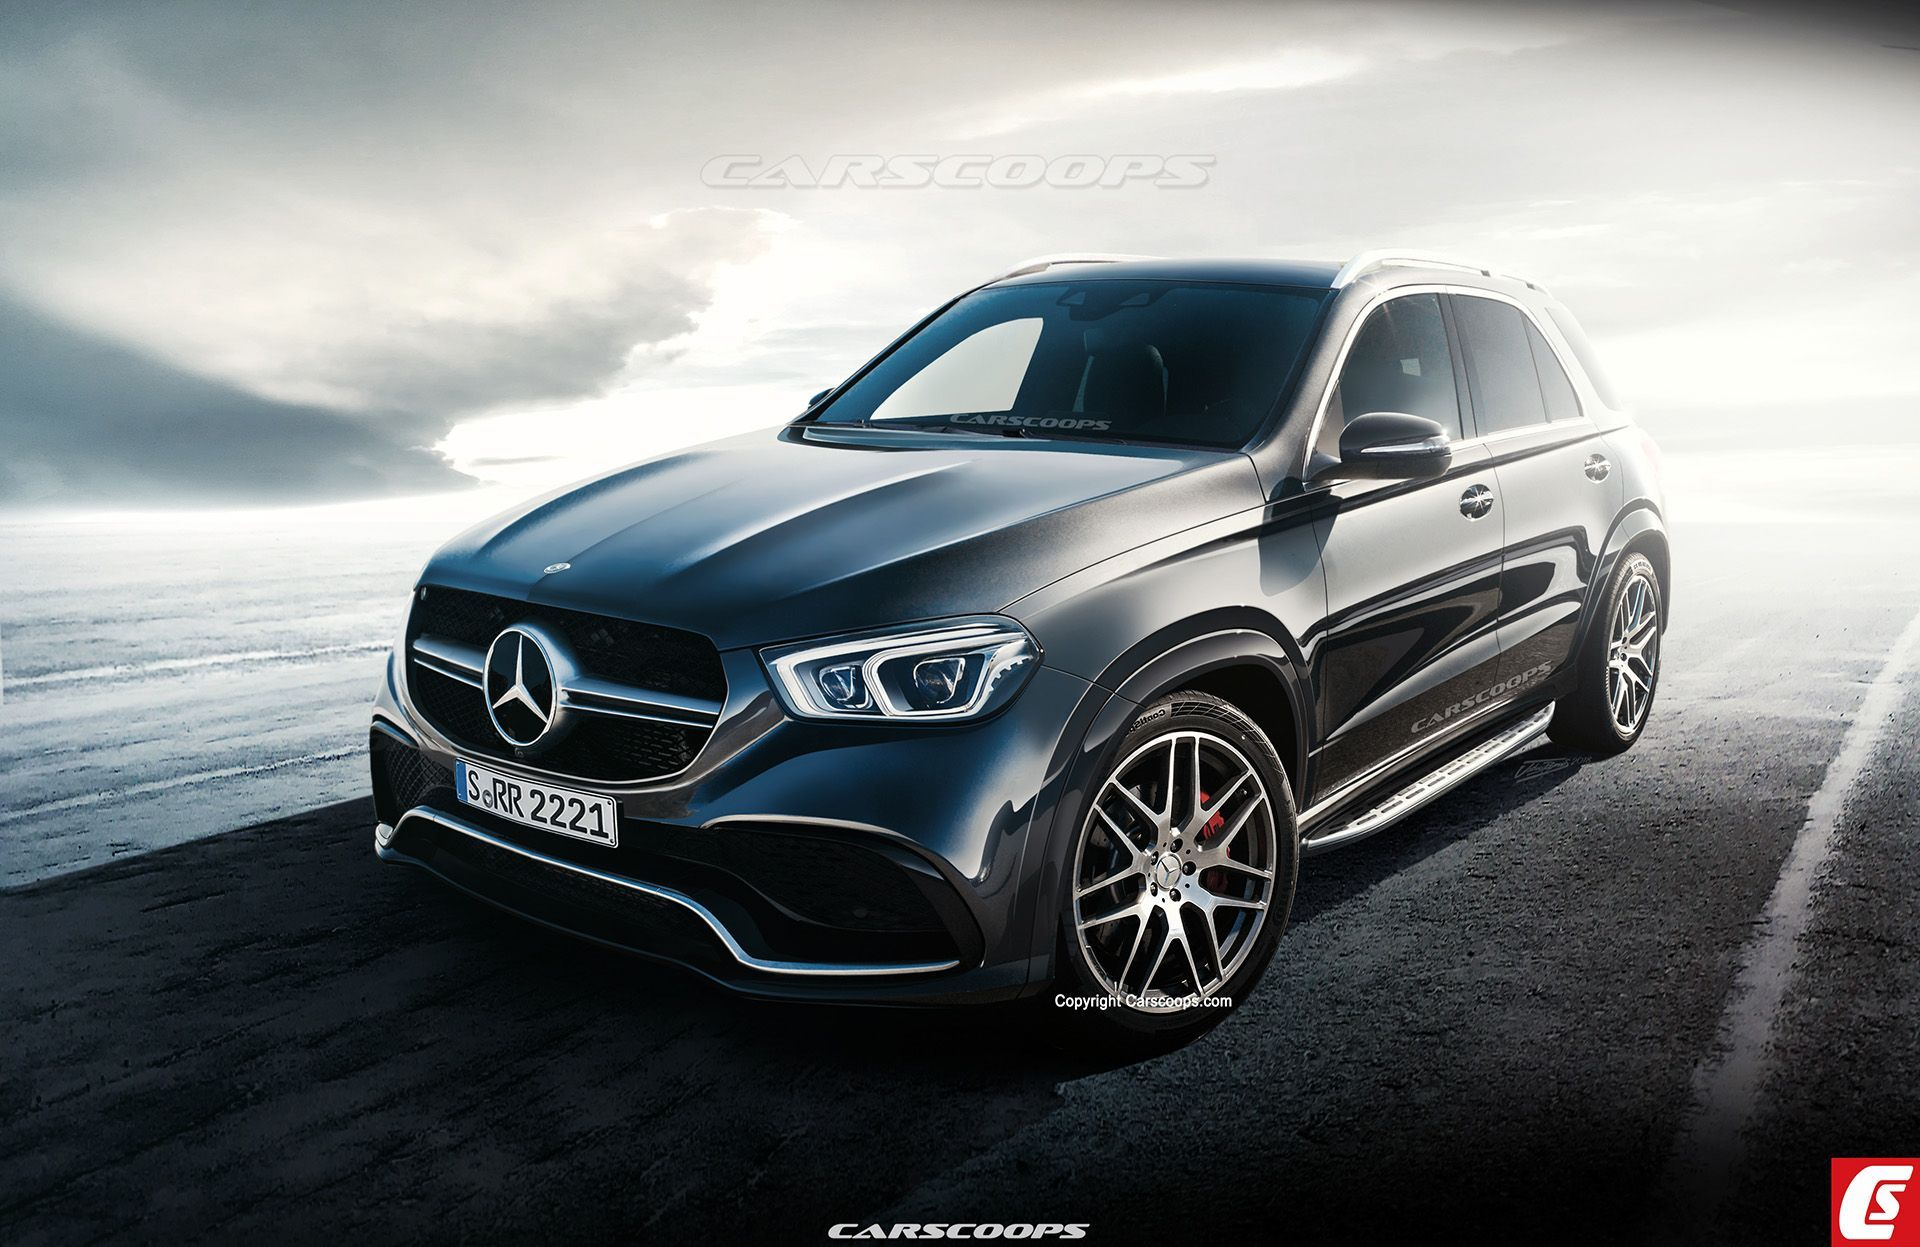 Mercedes Gle 2019 Hybrid Engine Mercedes Benz Gle Mercedes Benz